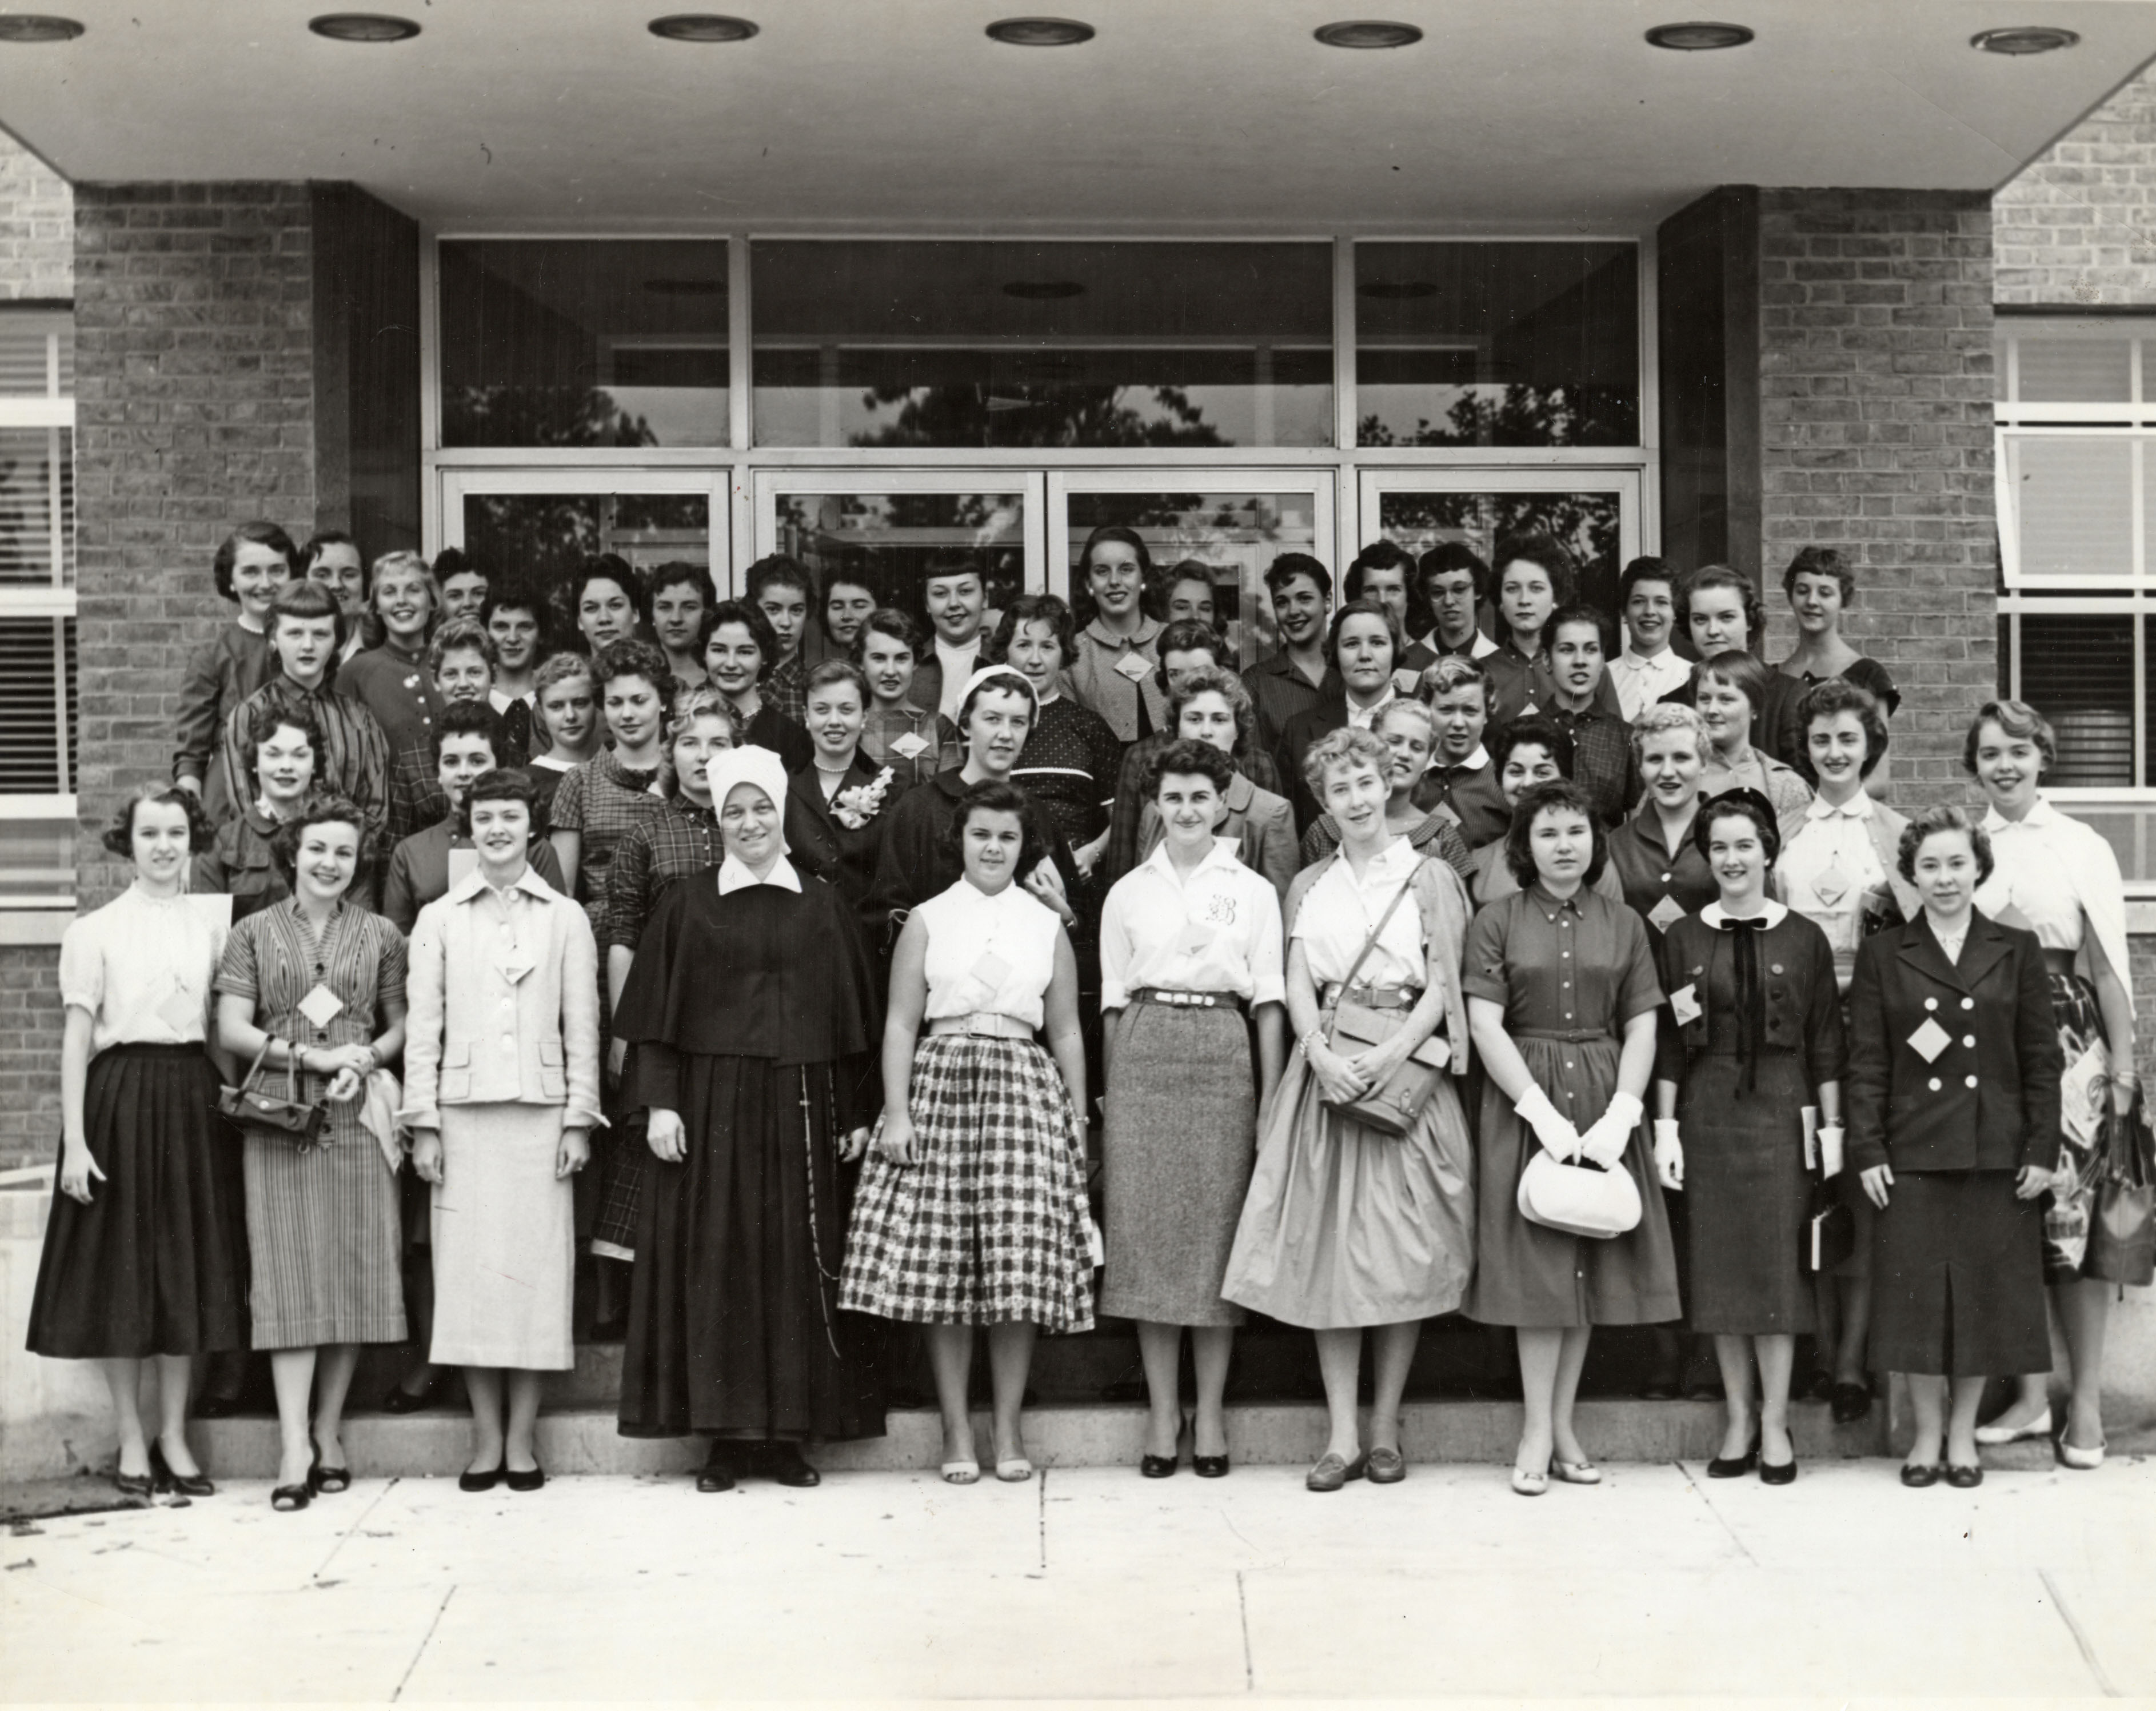 Women in front of St. Mary's